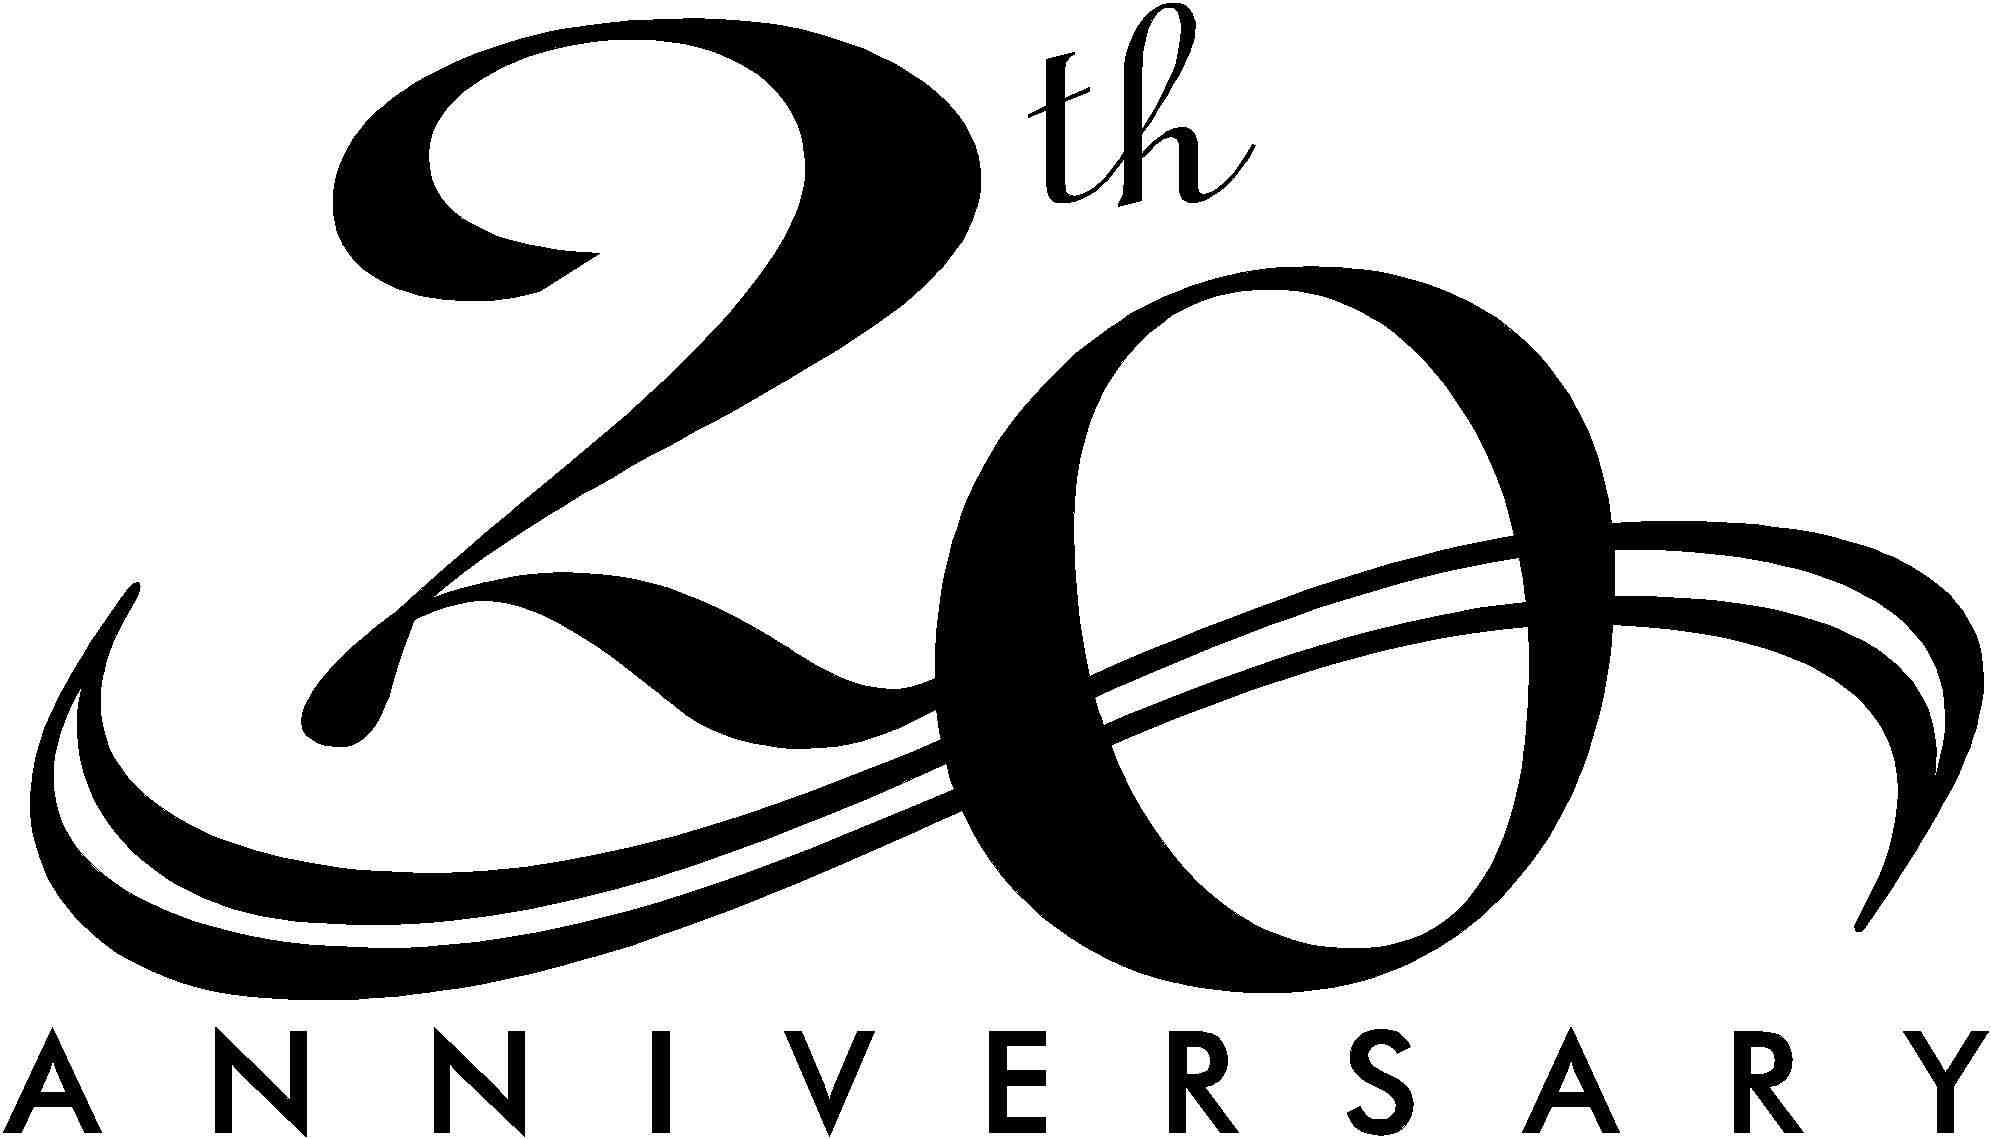 20th anniversary clipart 3 » Clipart Station.